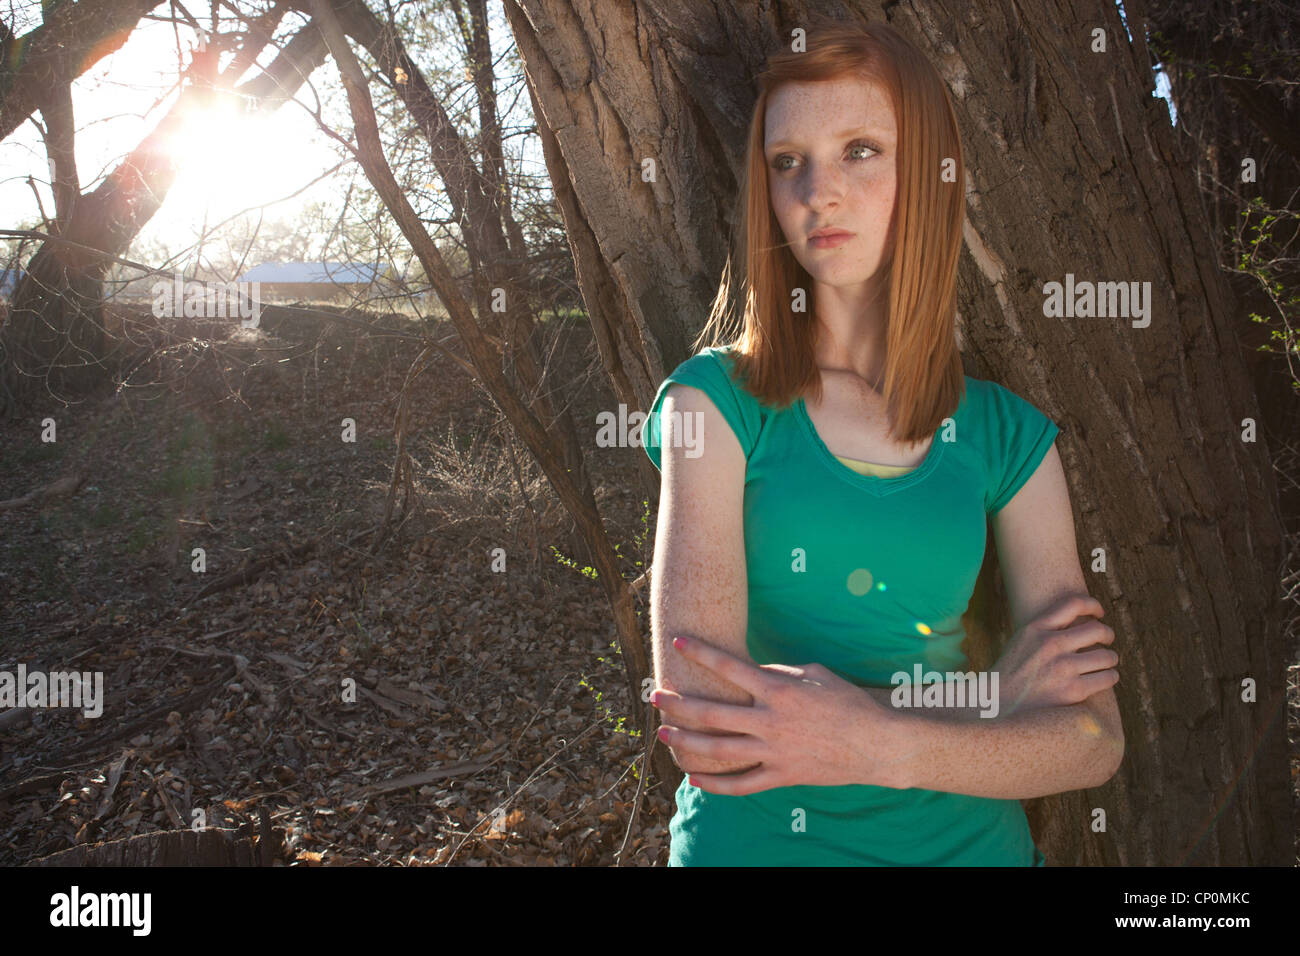 Fifteen year old girl standing by a tree. - Stock Image